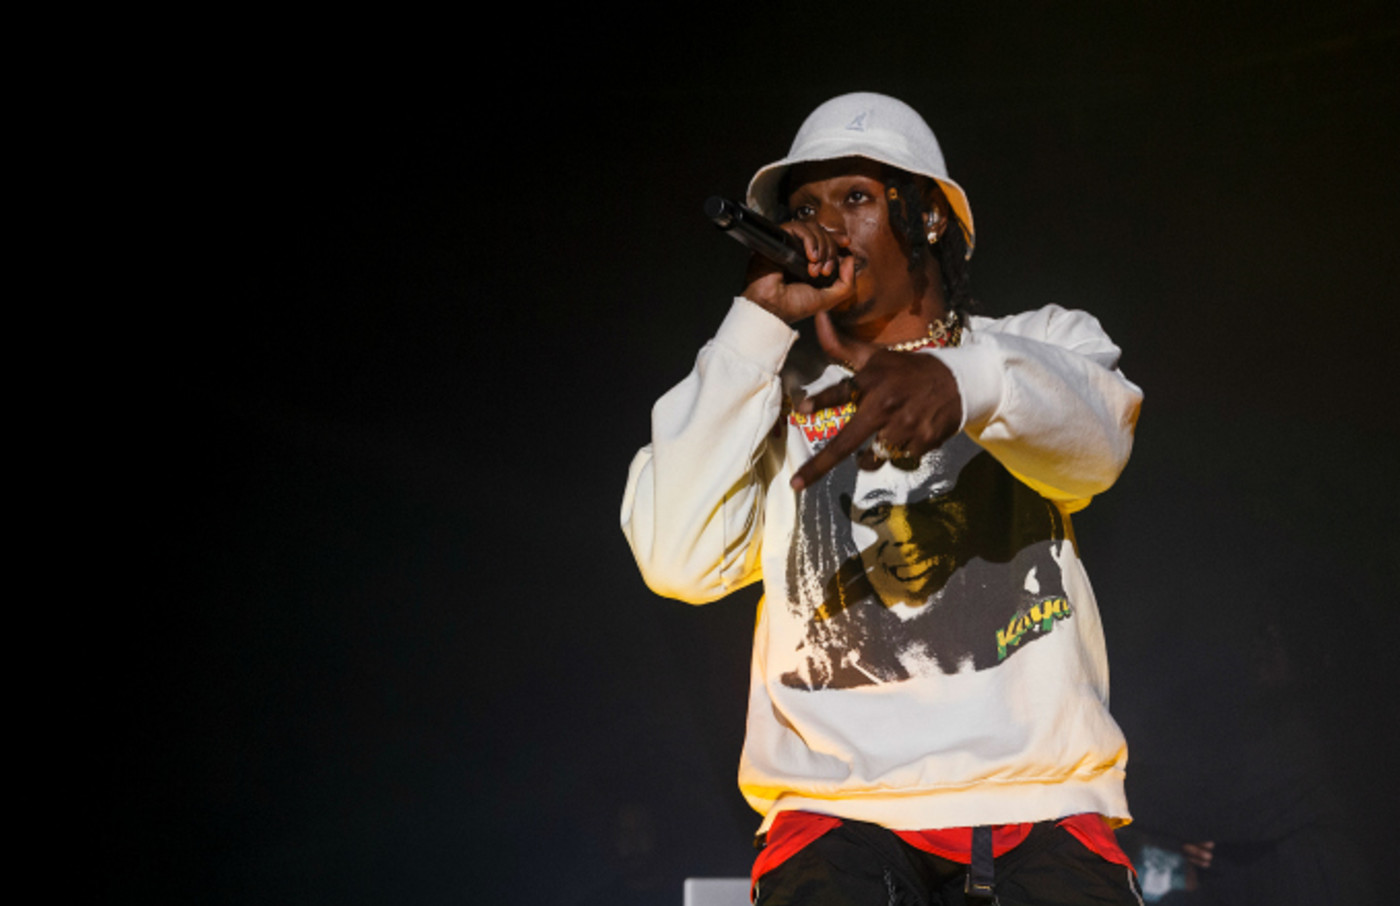 Rapper Joey Bada$$ performs on stage at PNE Forum